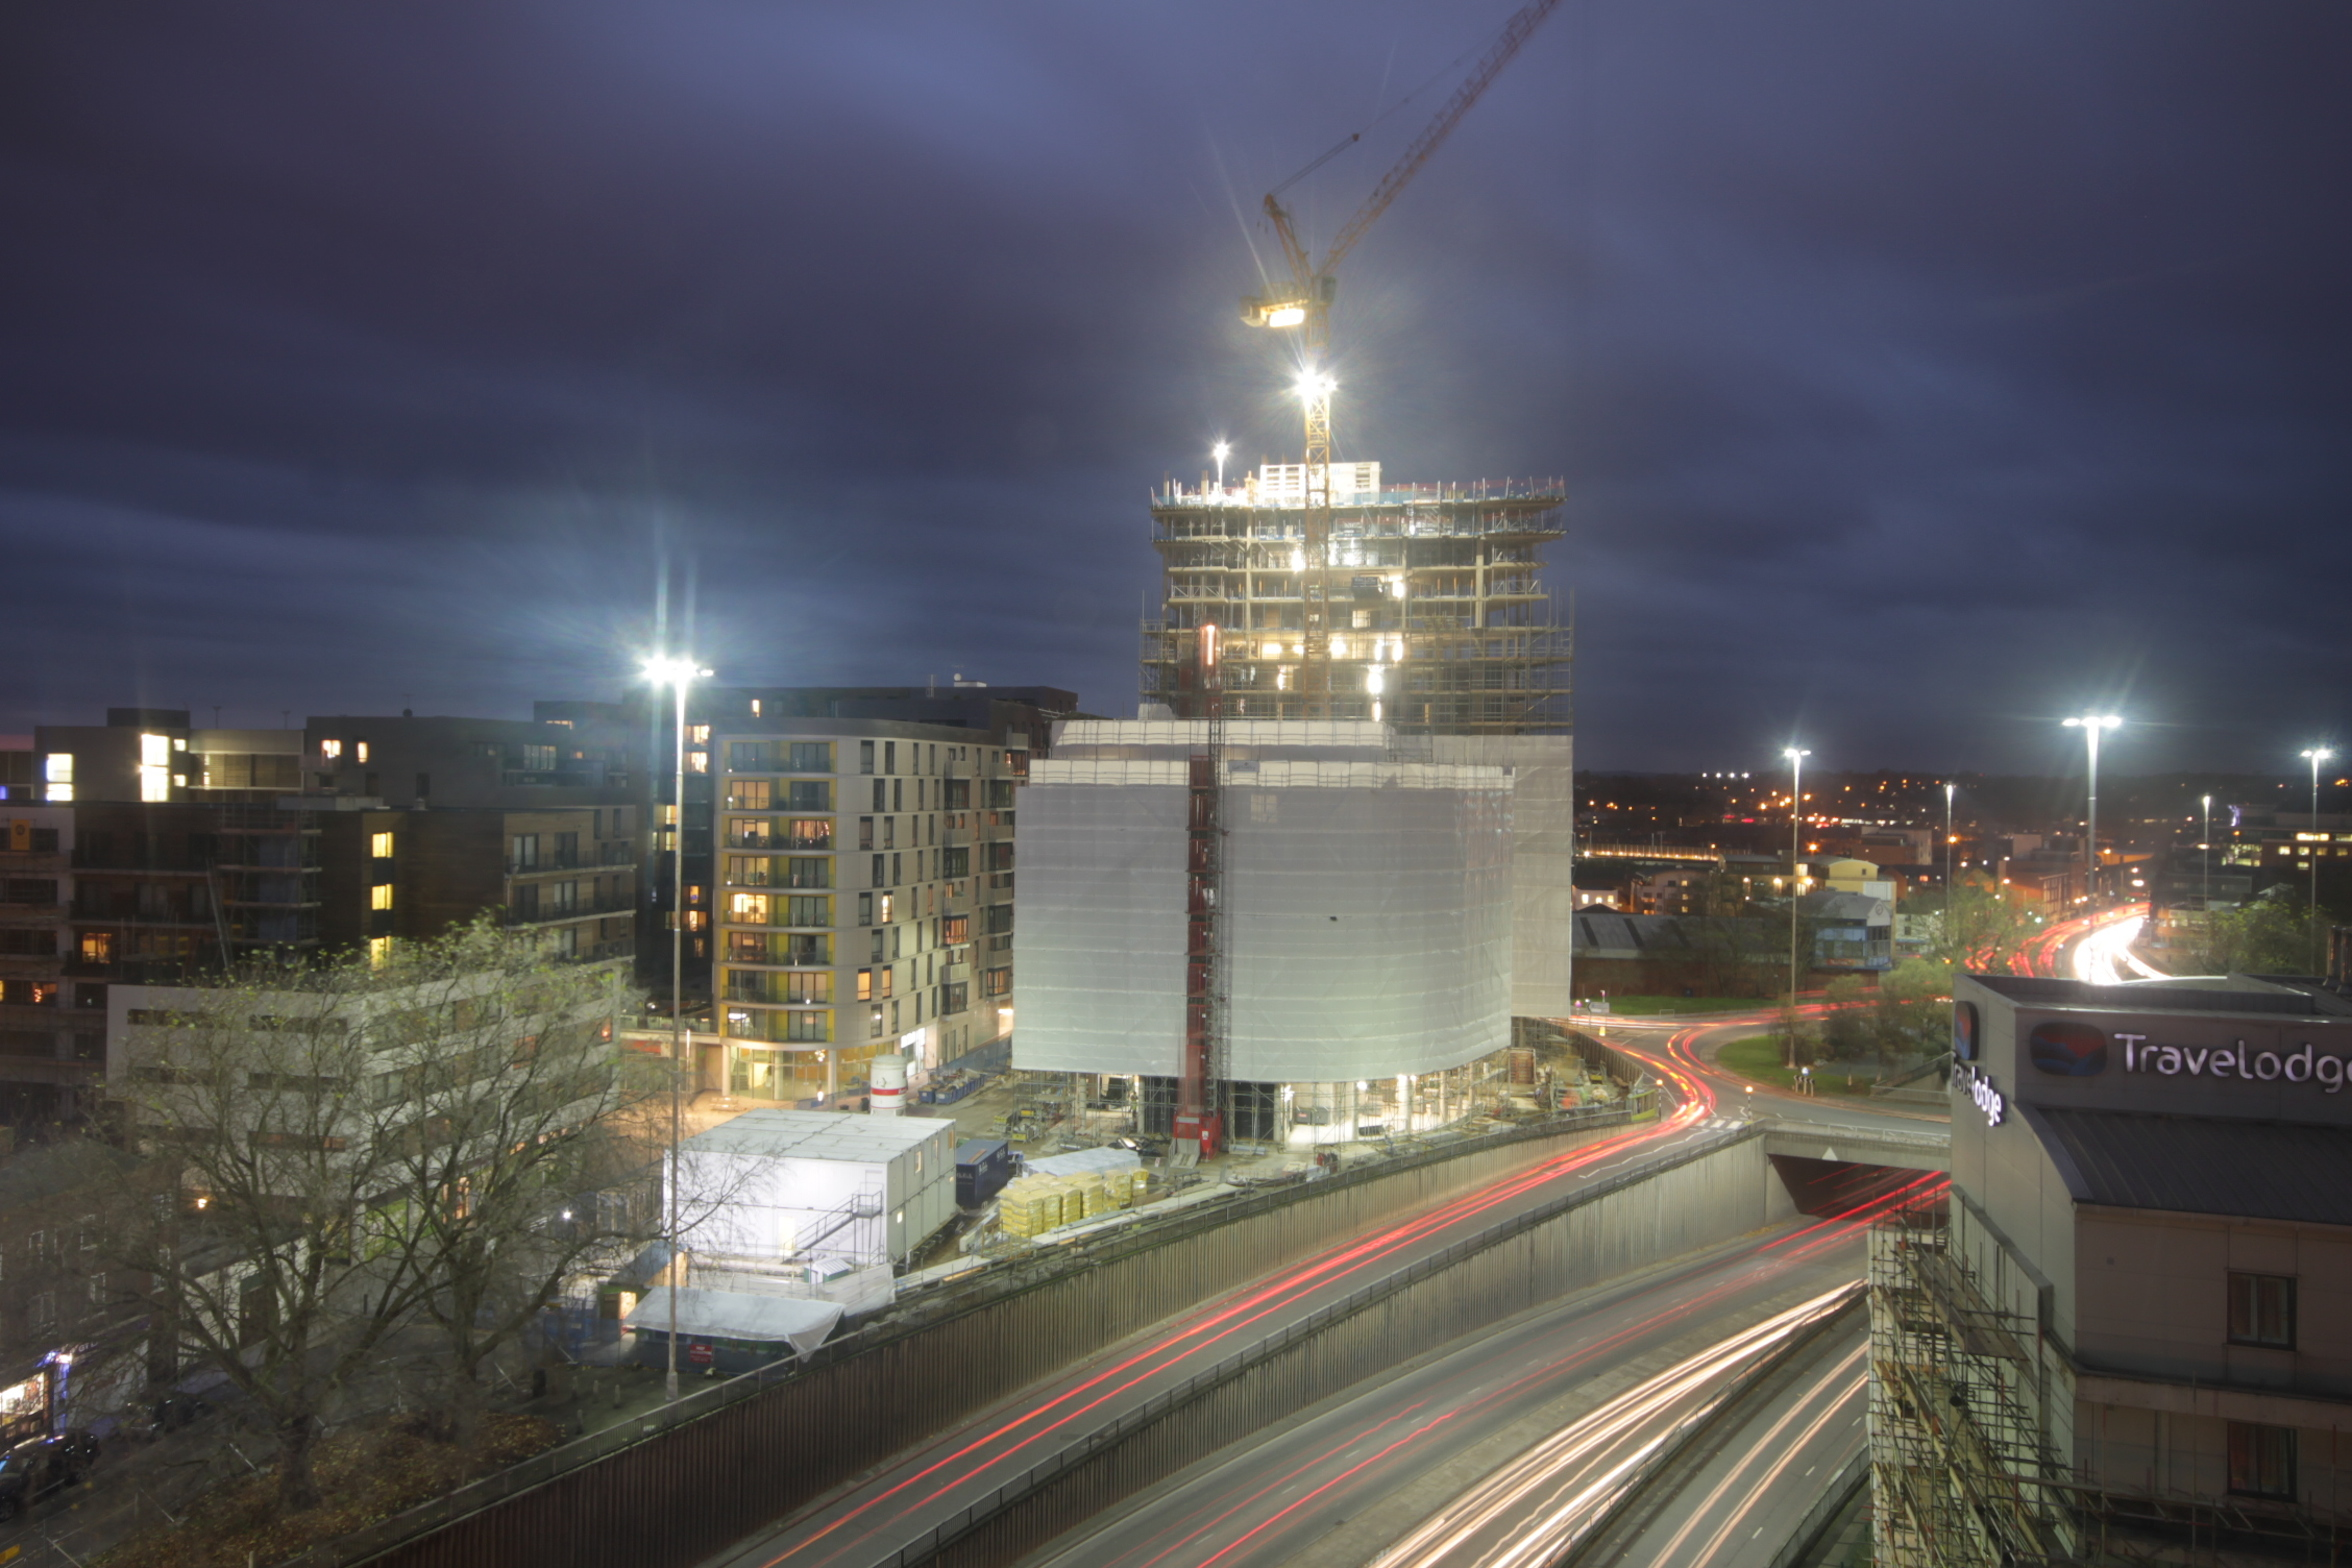 Long-exposure night shot of City Tower at Reading